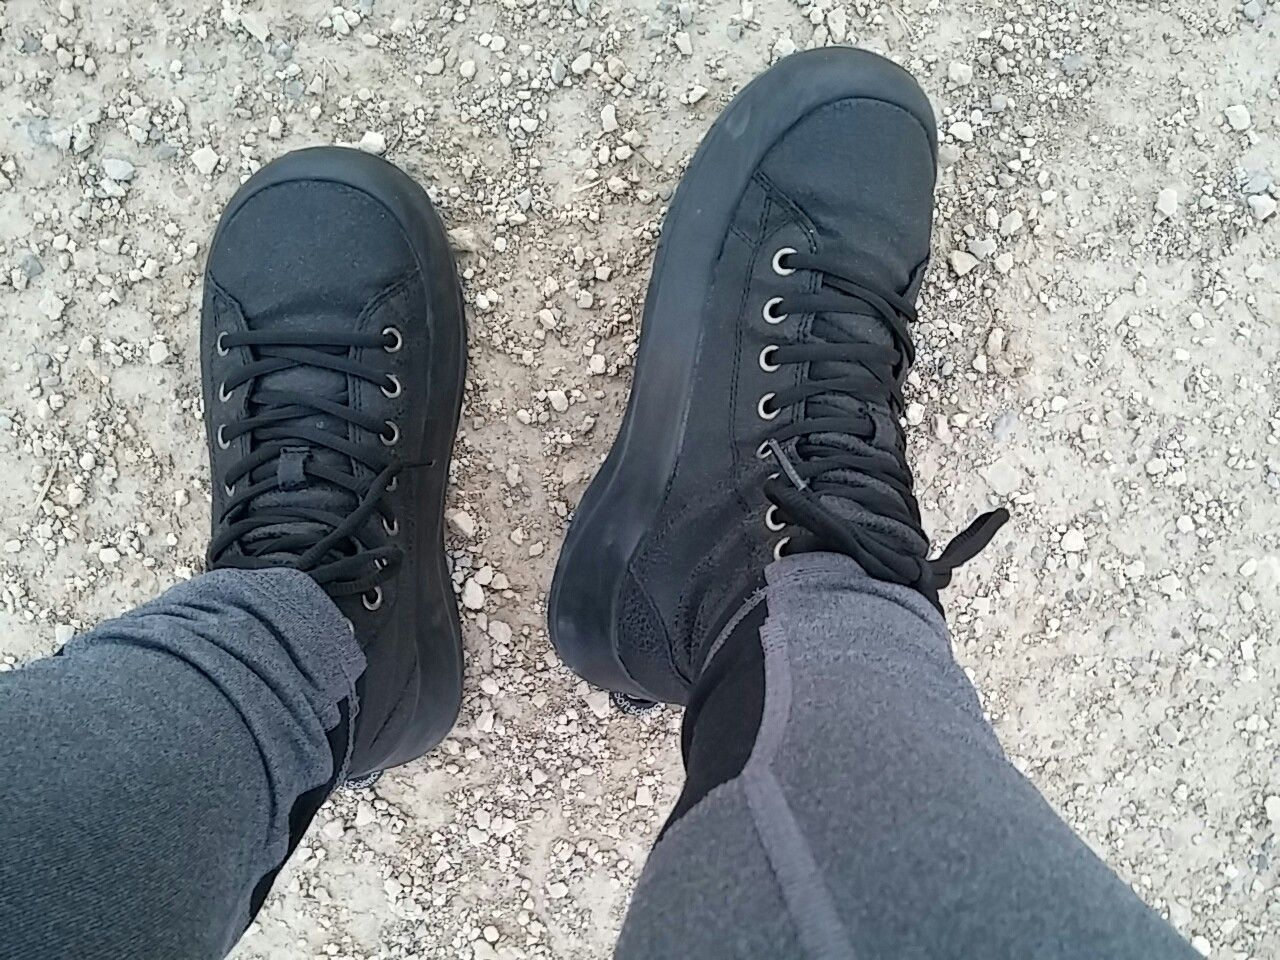 Best workout shoe ever!